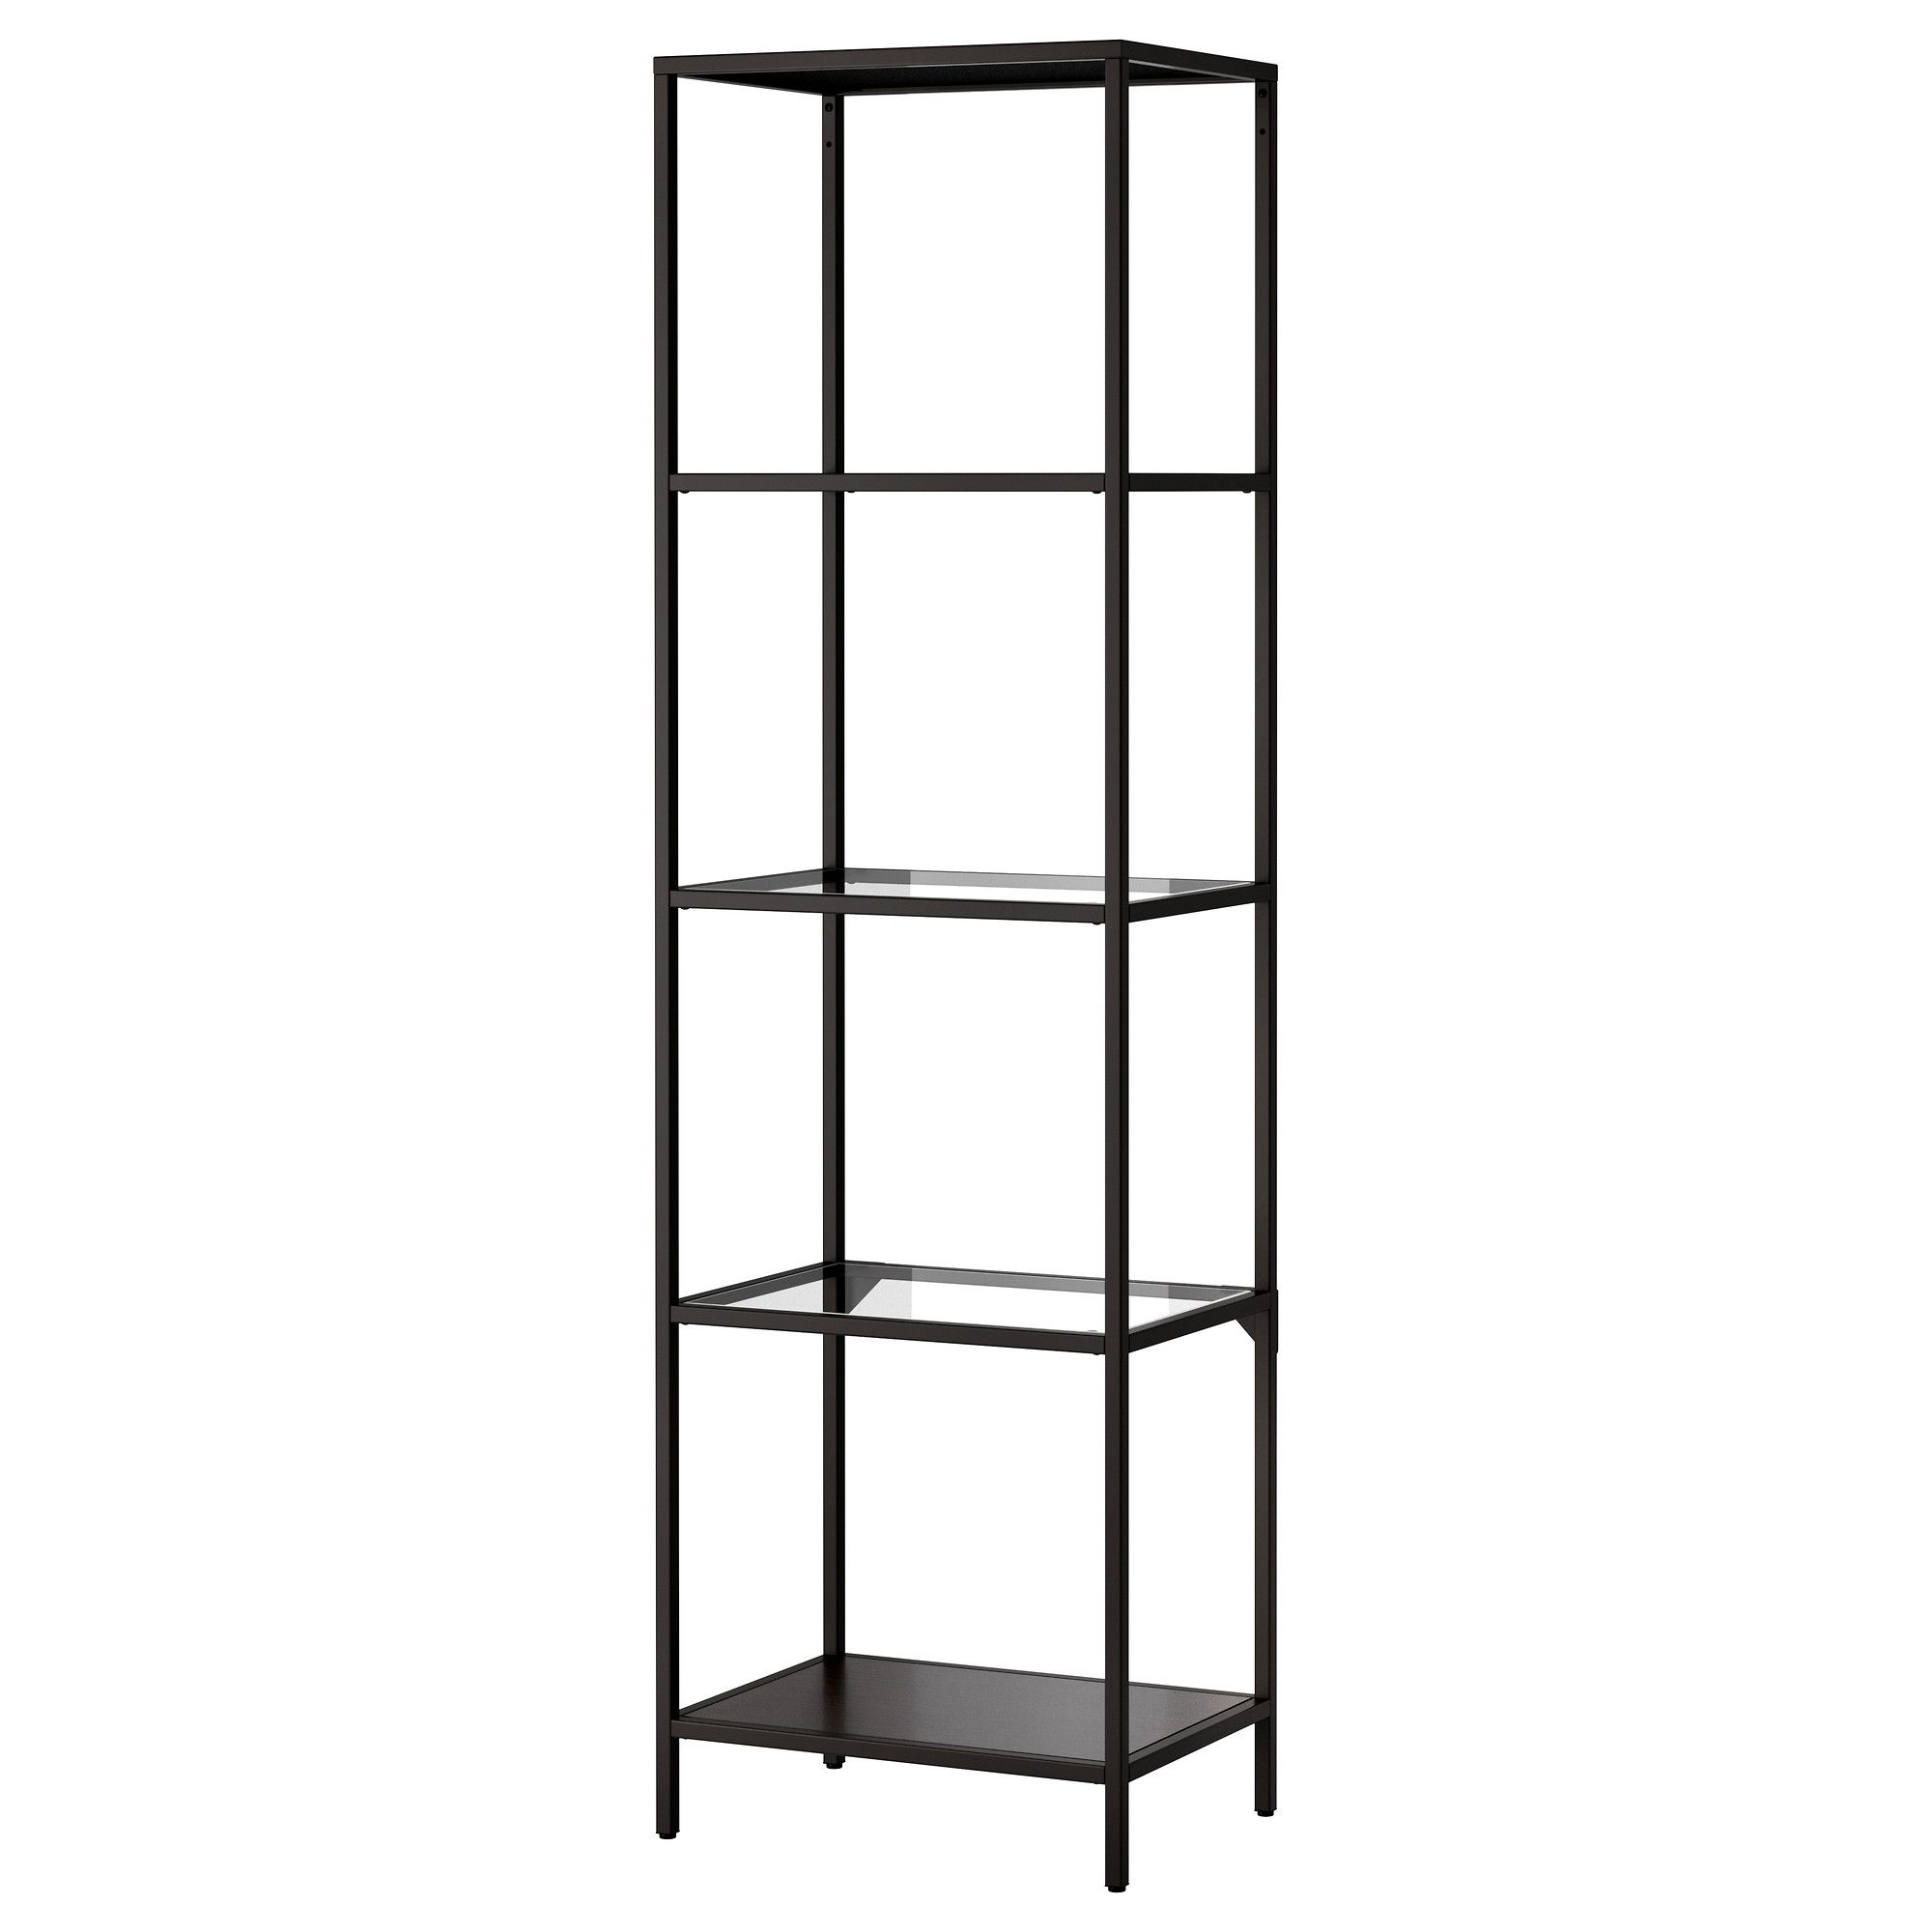 And this matching shelf will fit perfectly in the nook beside the chimney in the office, and matches the desk. For cheap. $40.00 VITTSJÖ Shelving unit - IKEA